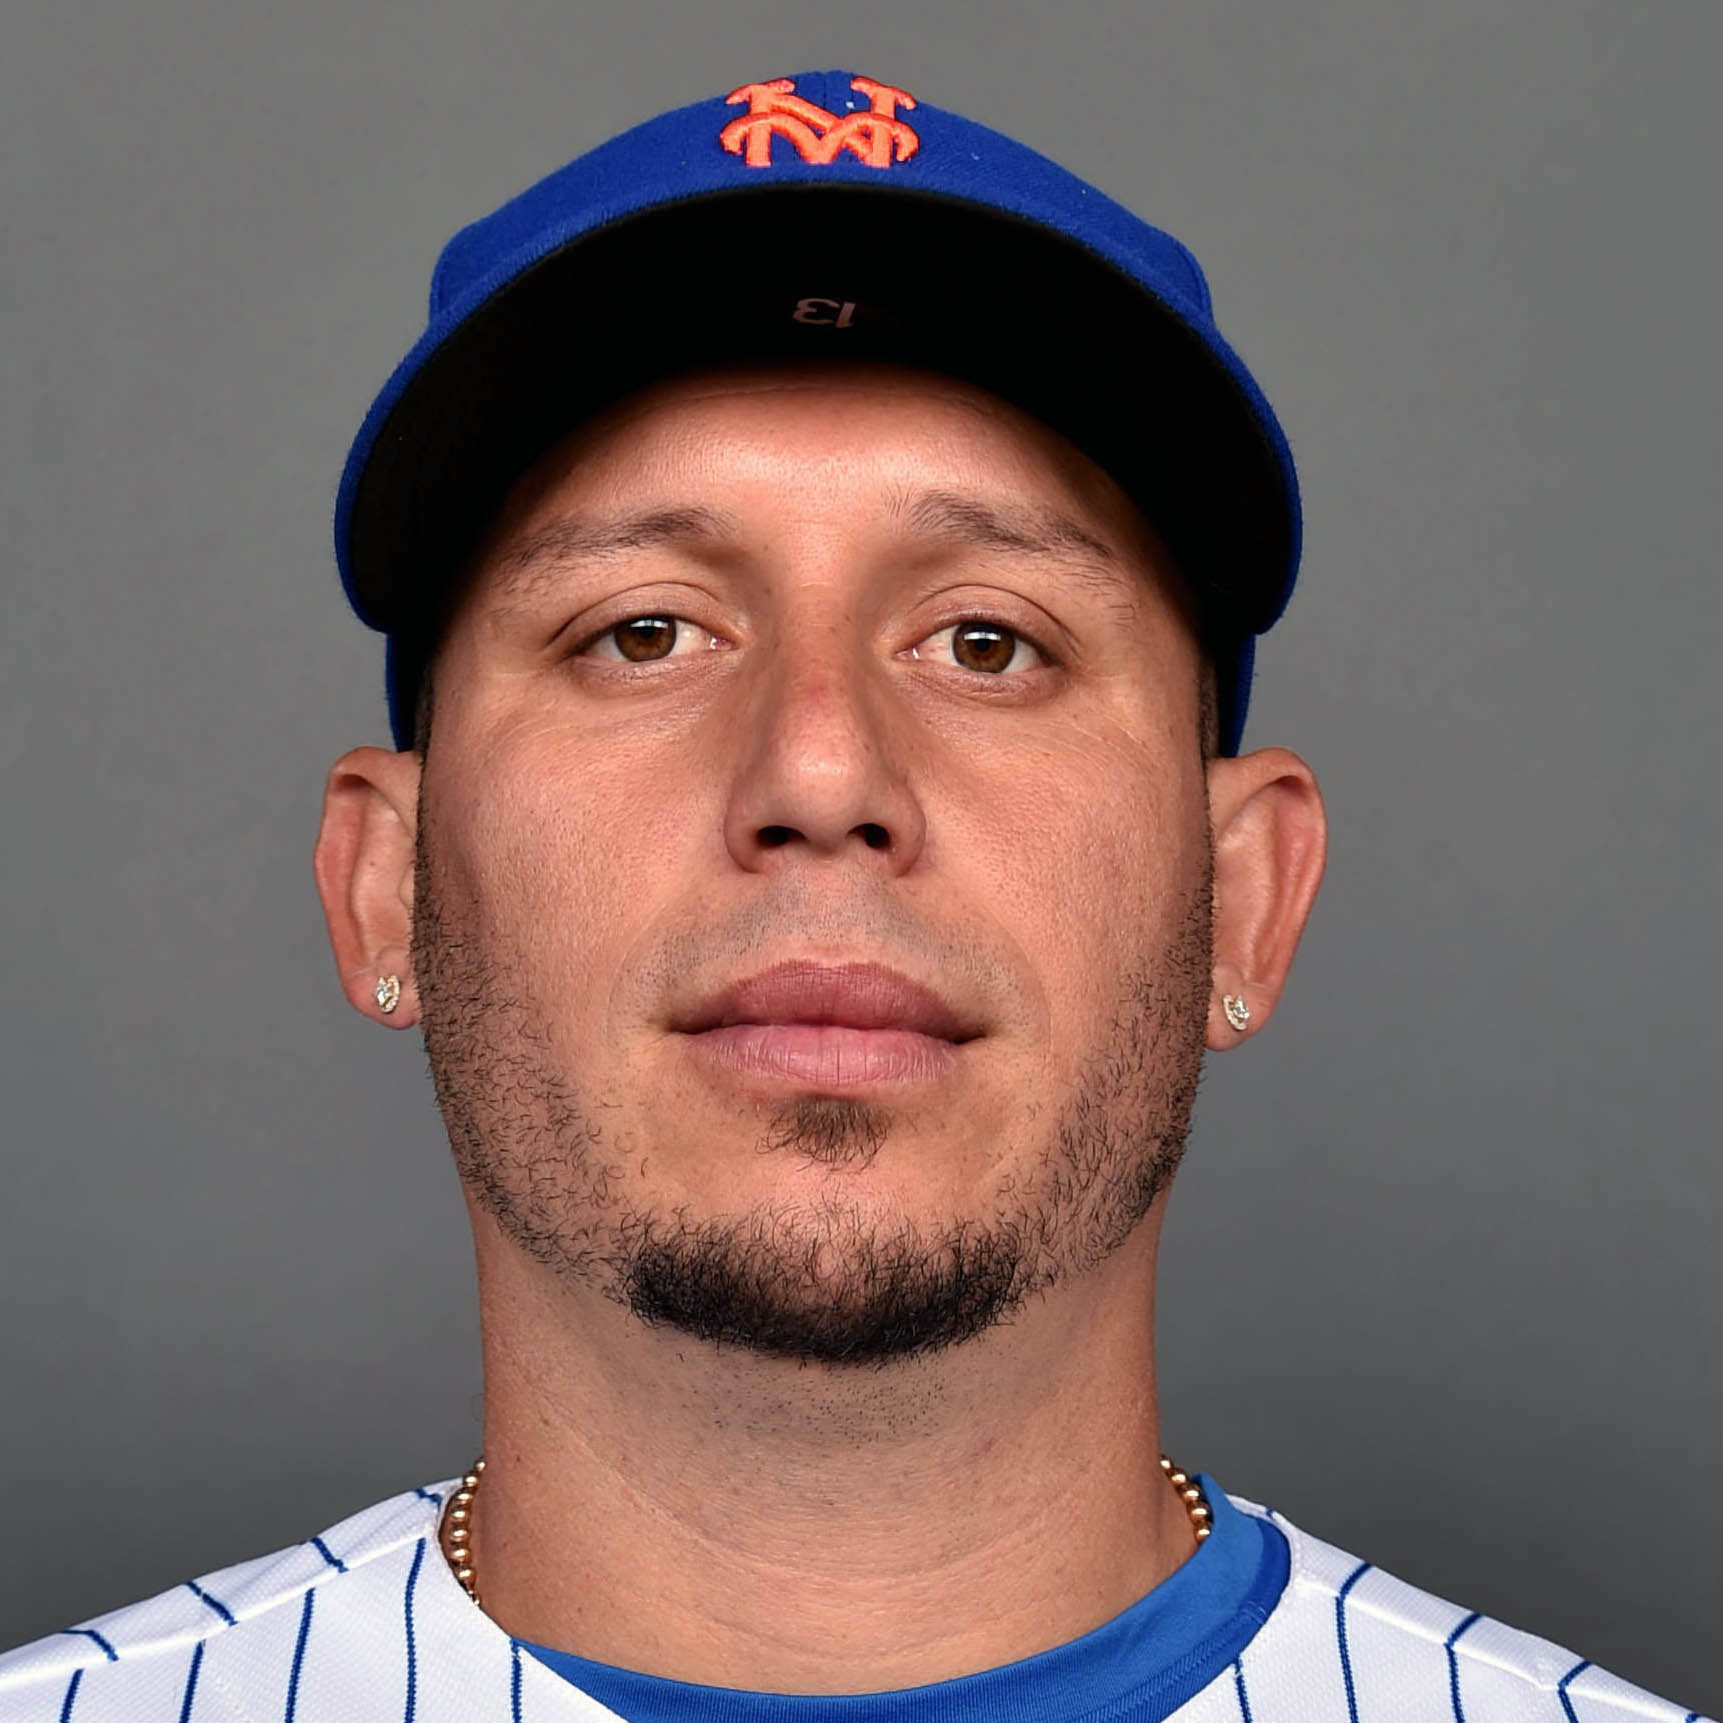 Asdrubal Cabrera Headshot